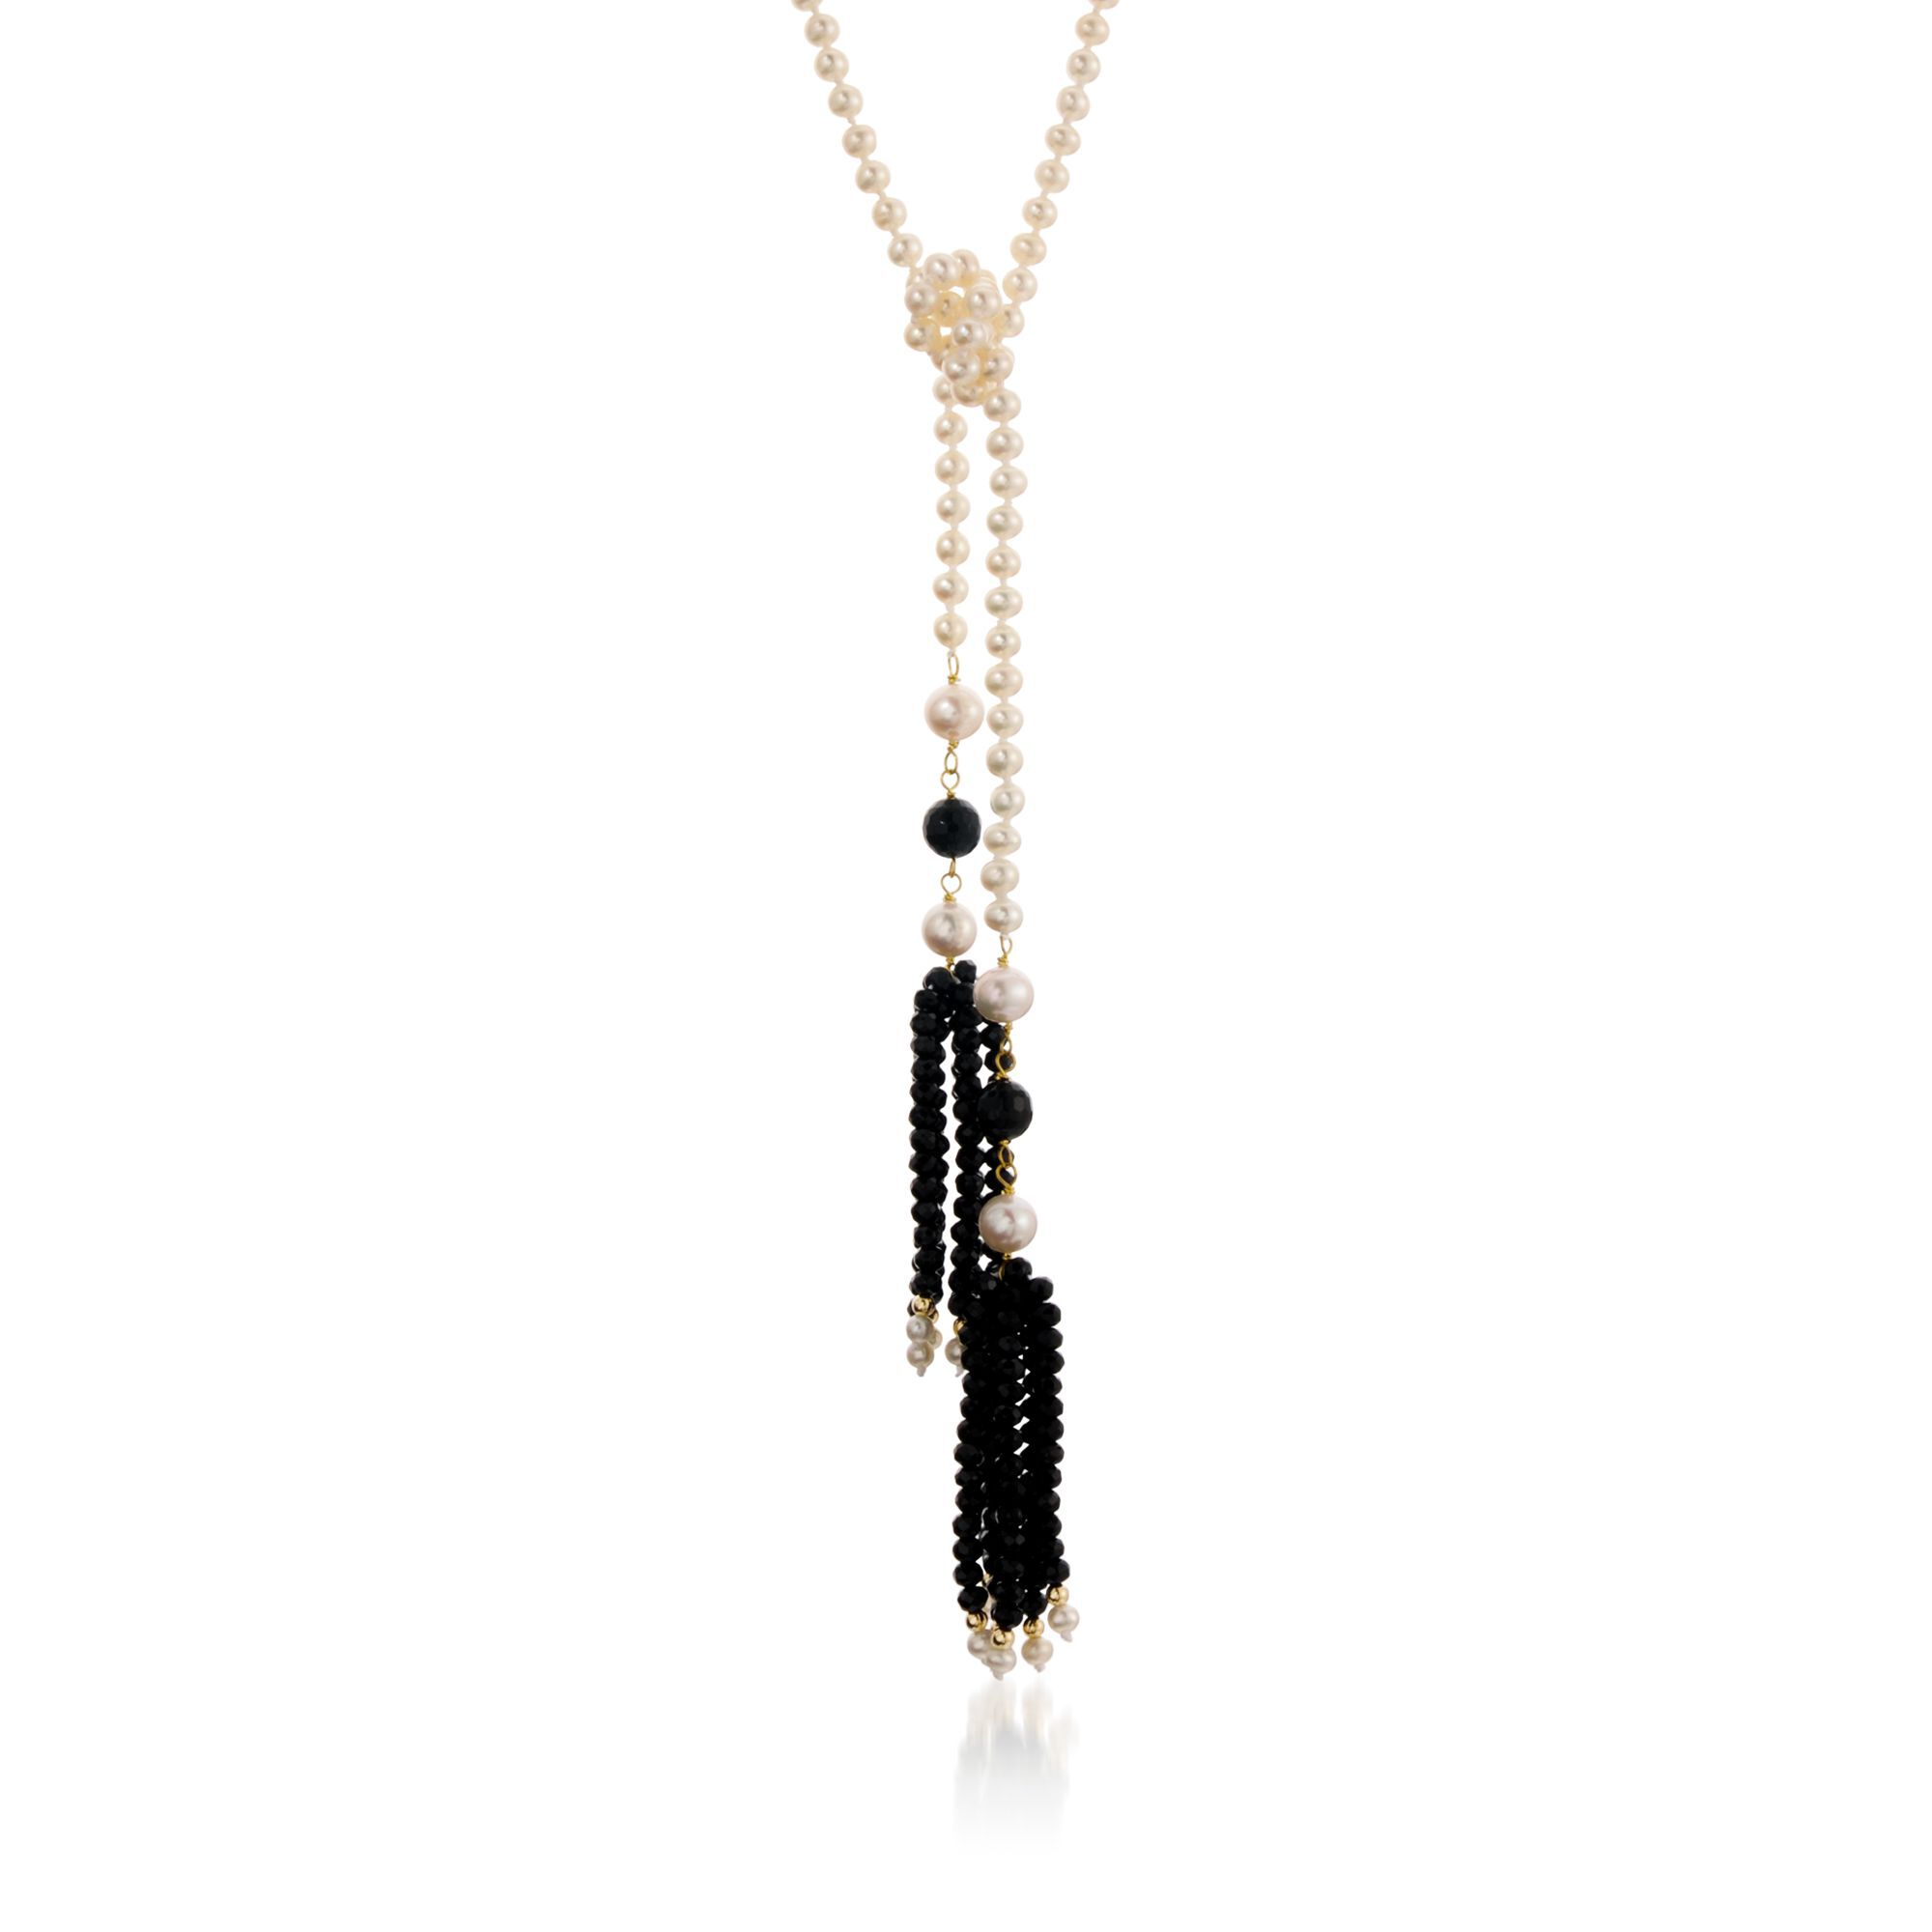 Simons Pearl lariat necklace